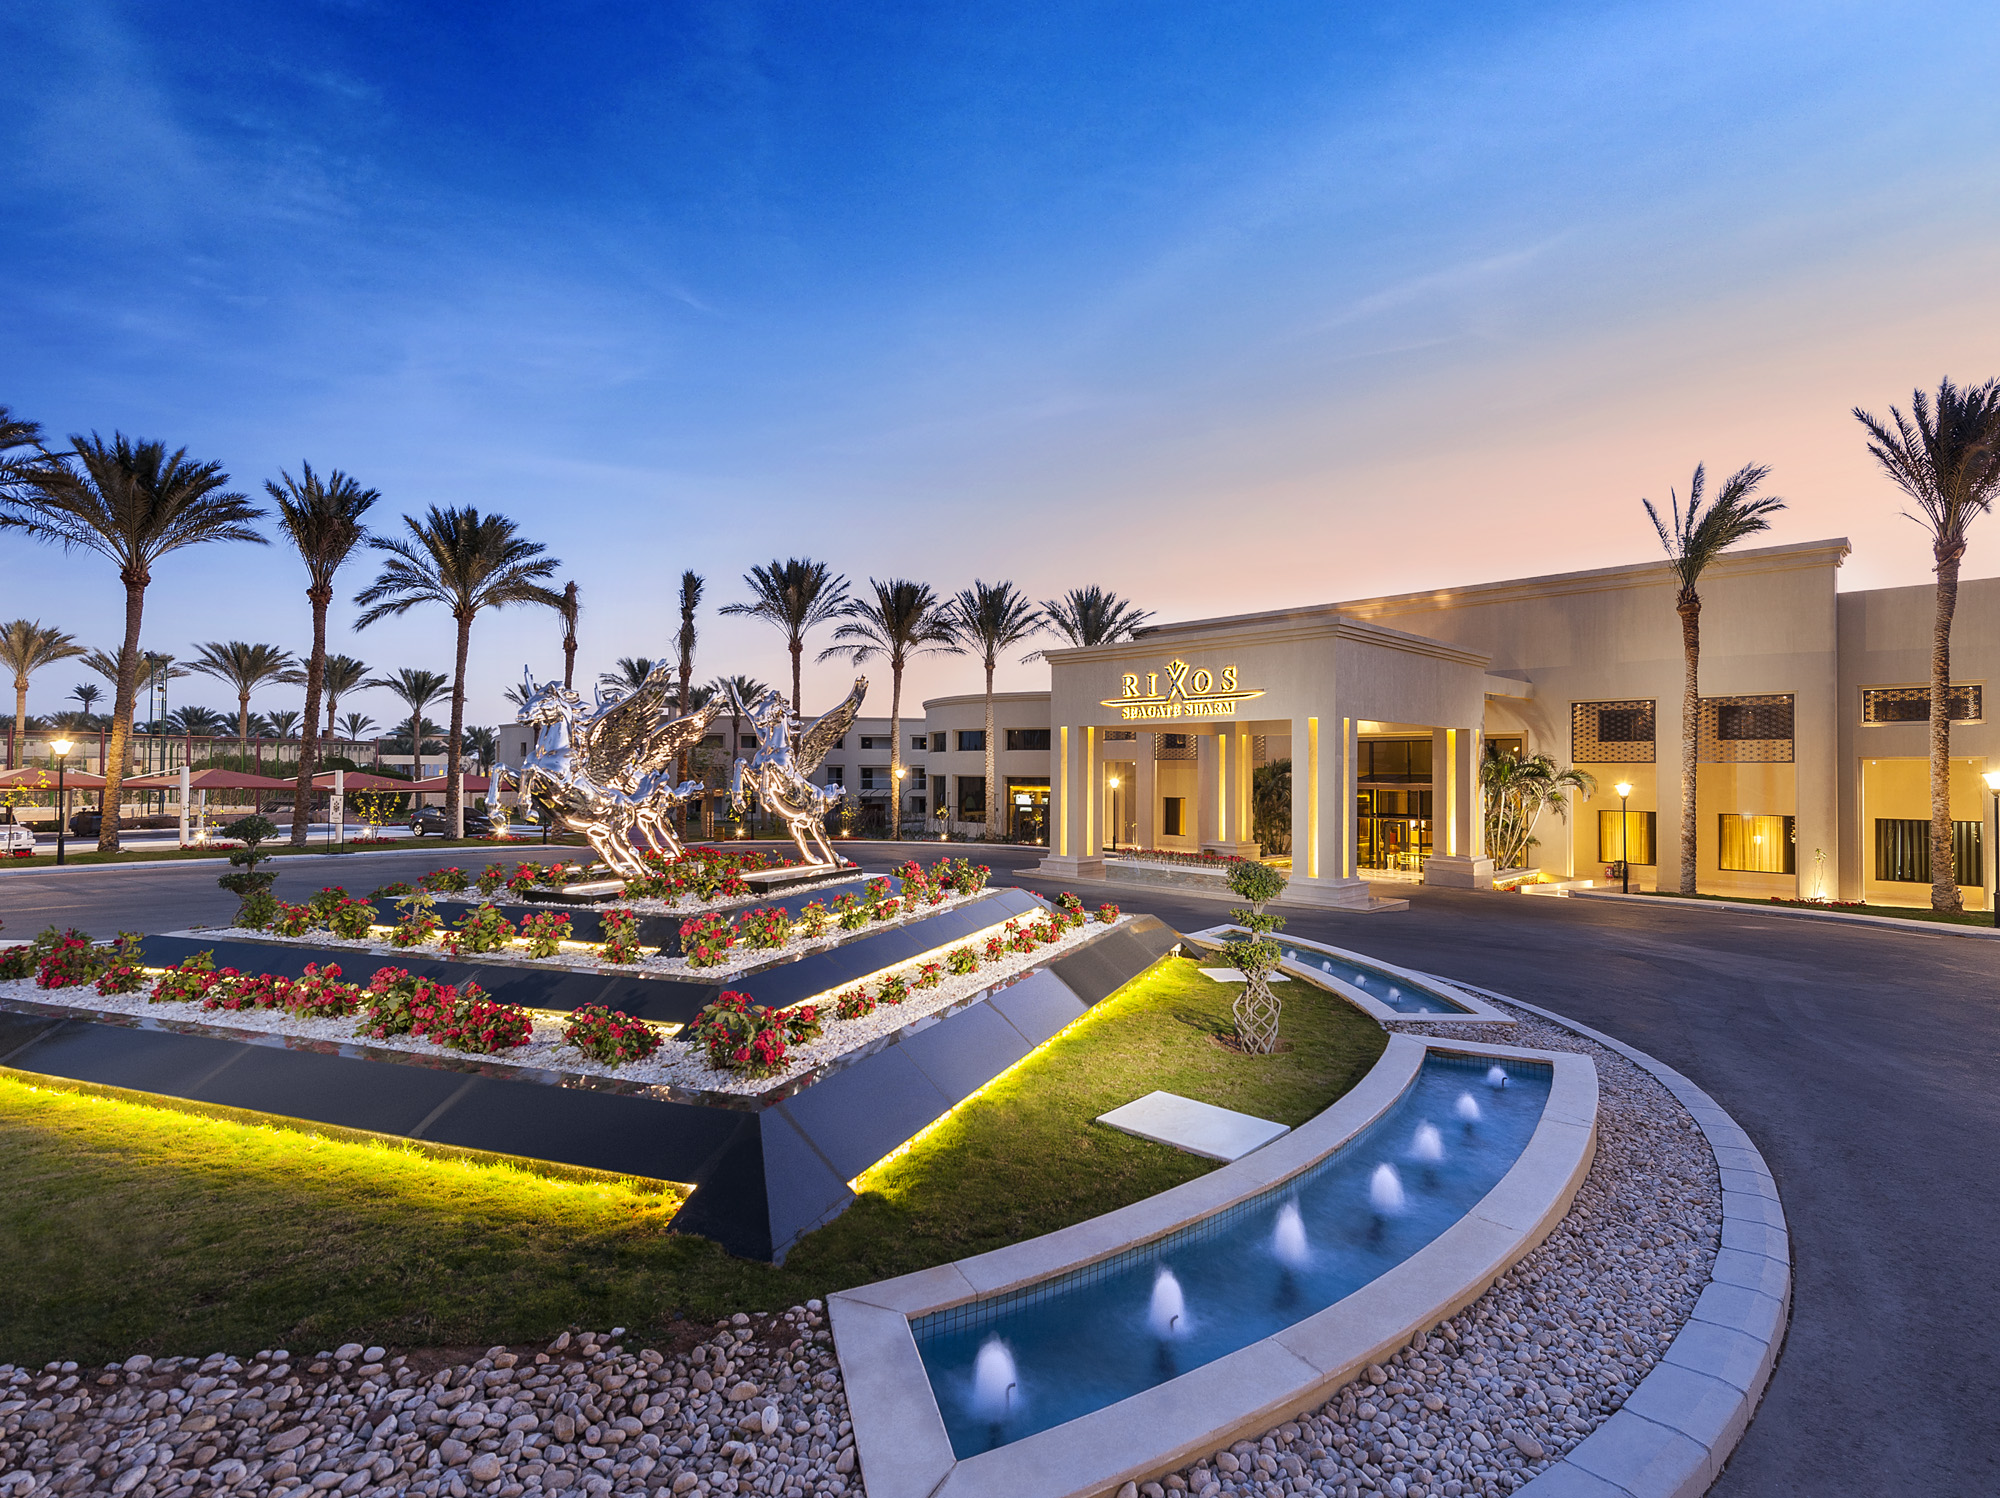 Luxury Lifestyle Awards Praises Rixos Seagate Sharm Resort for Excellence in Service